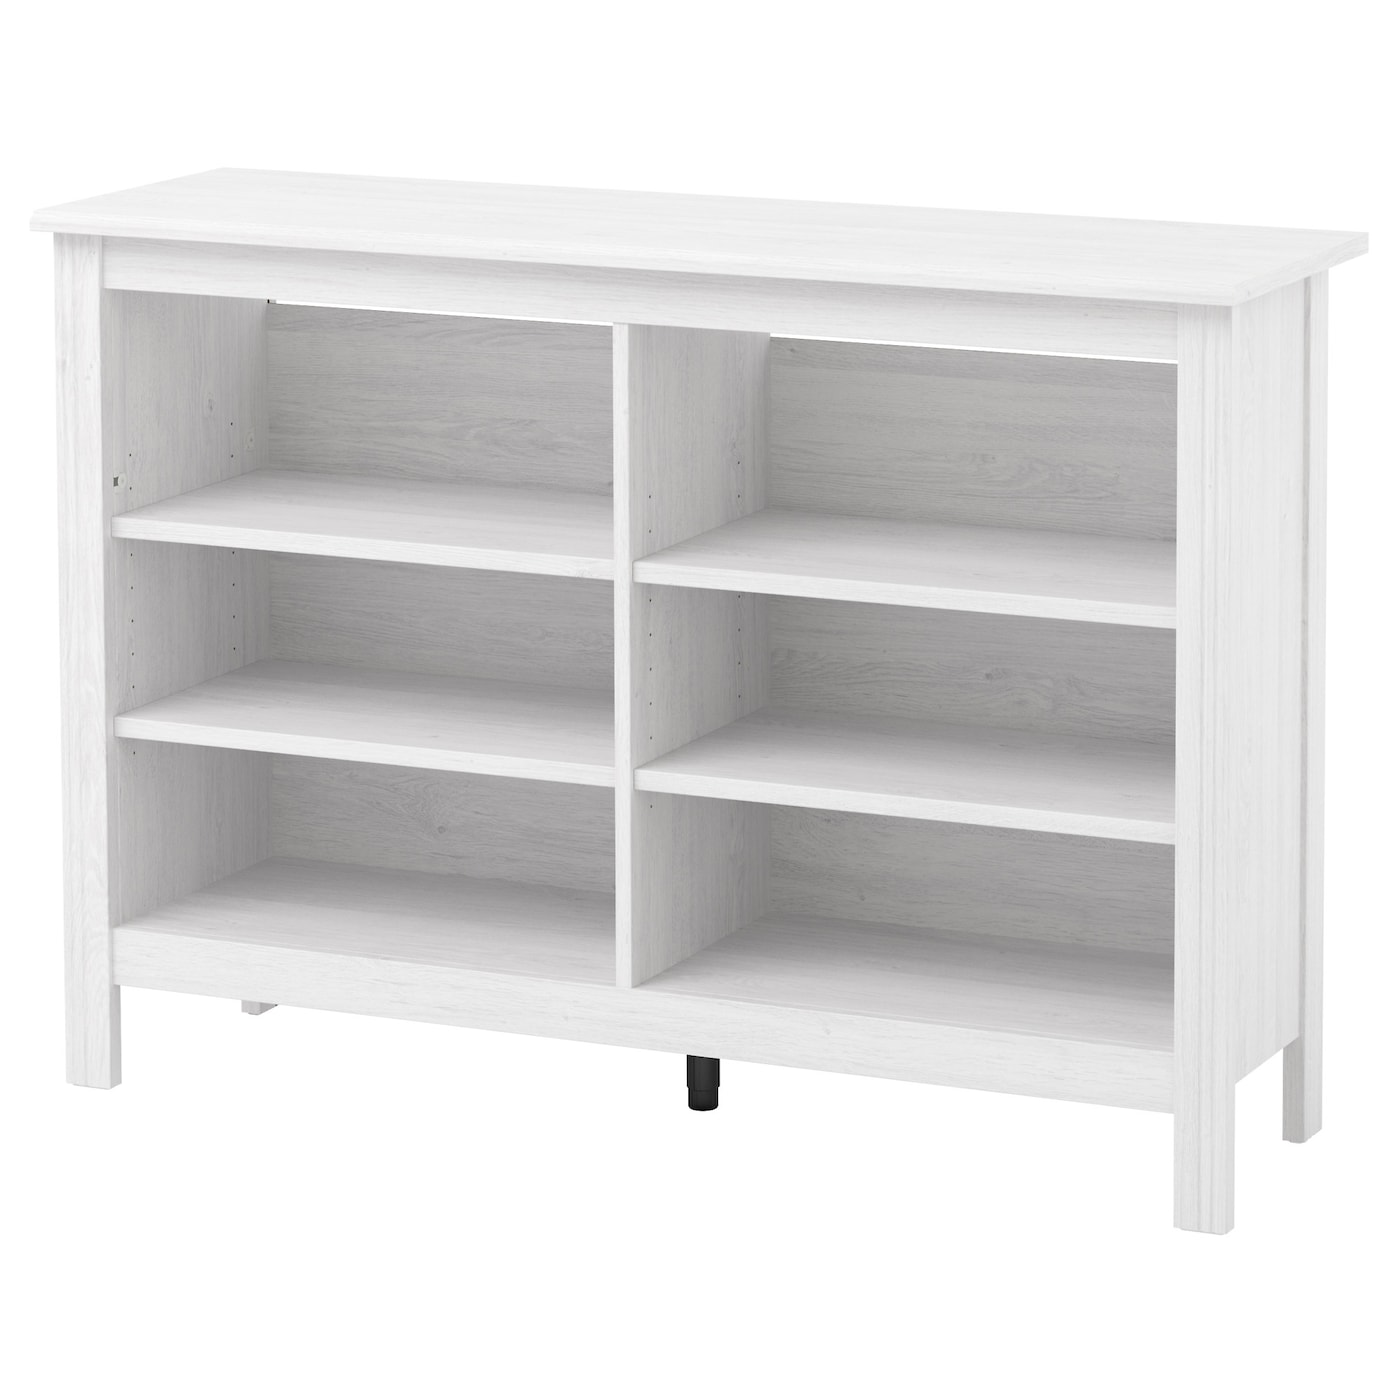 Tv Lift Meubel Ikea.Brusali Tv Bench White Ikea